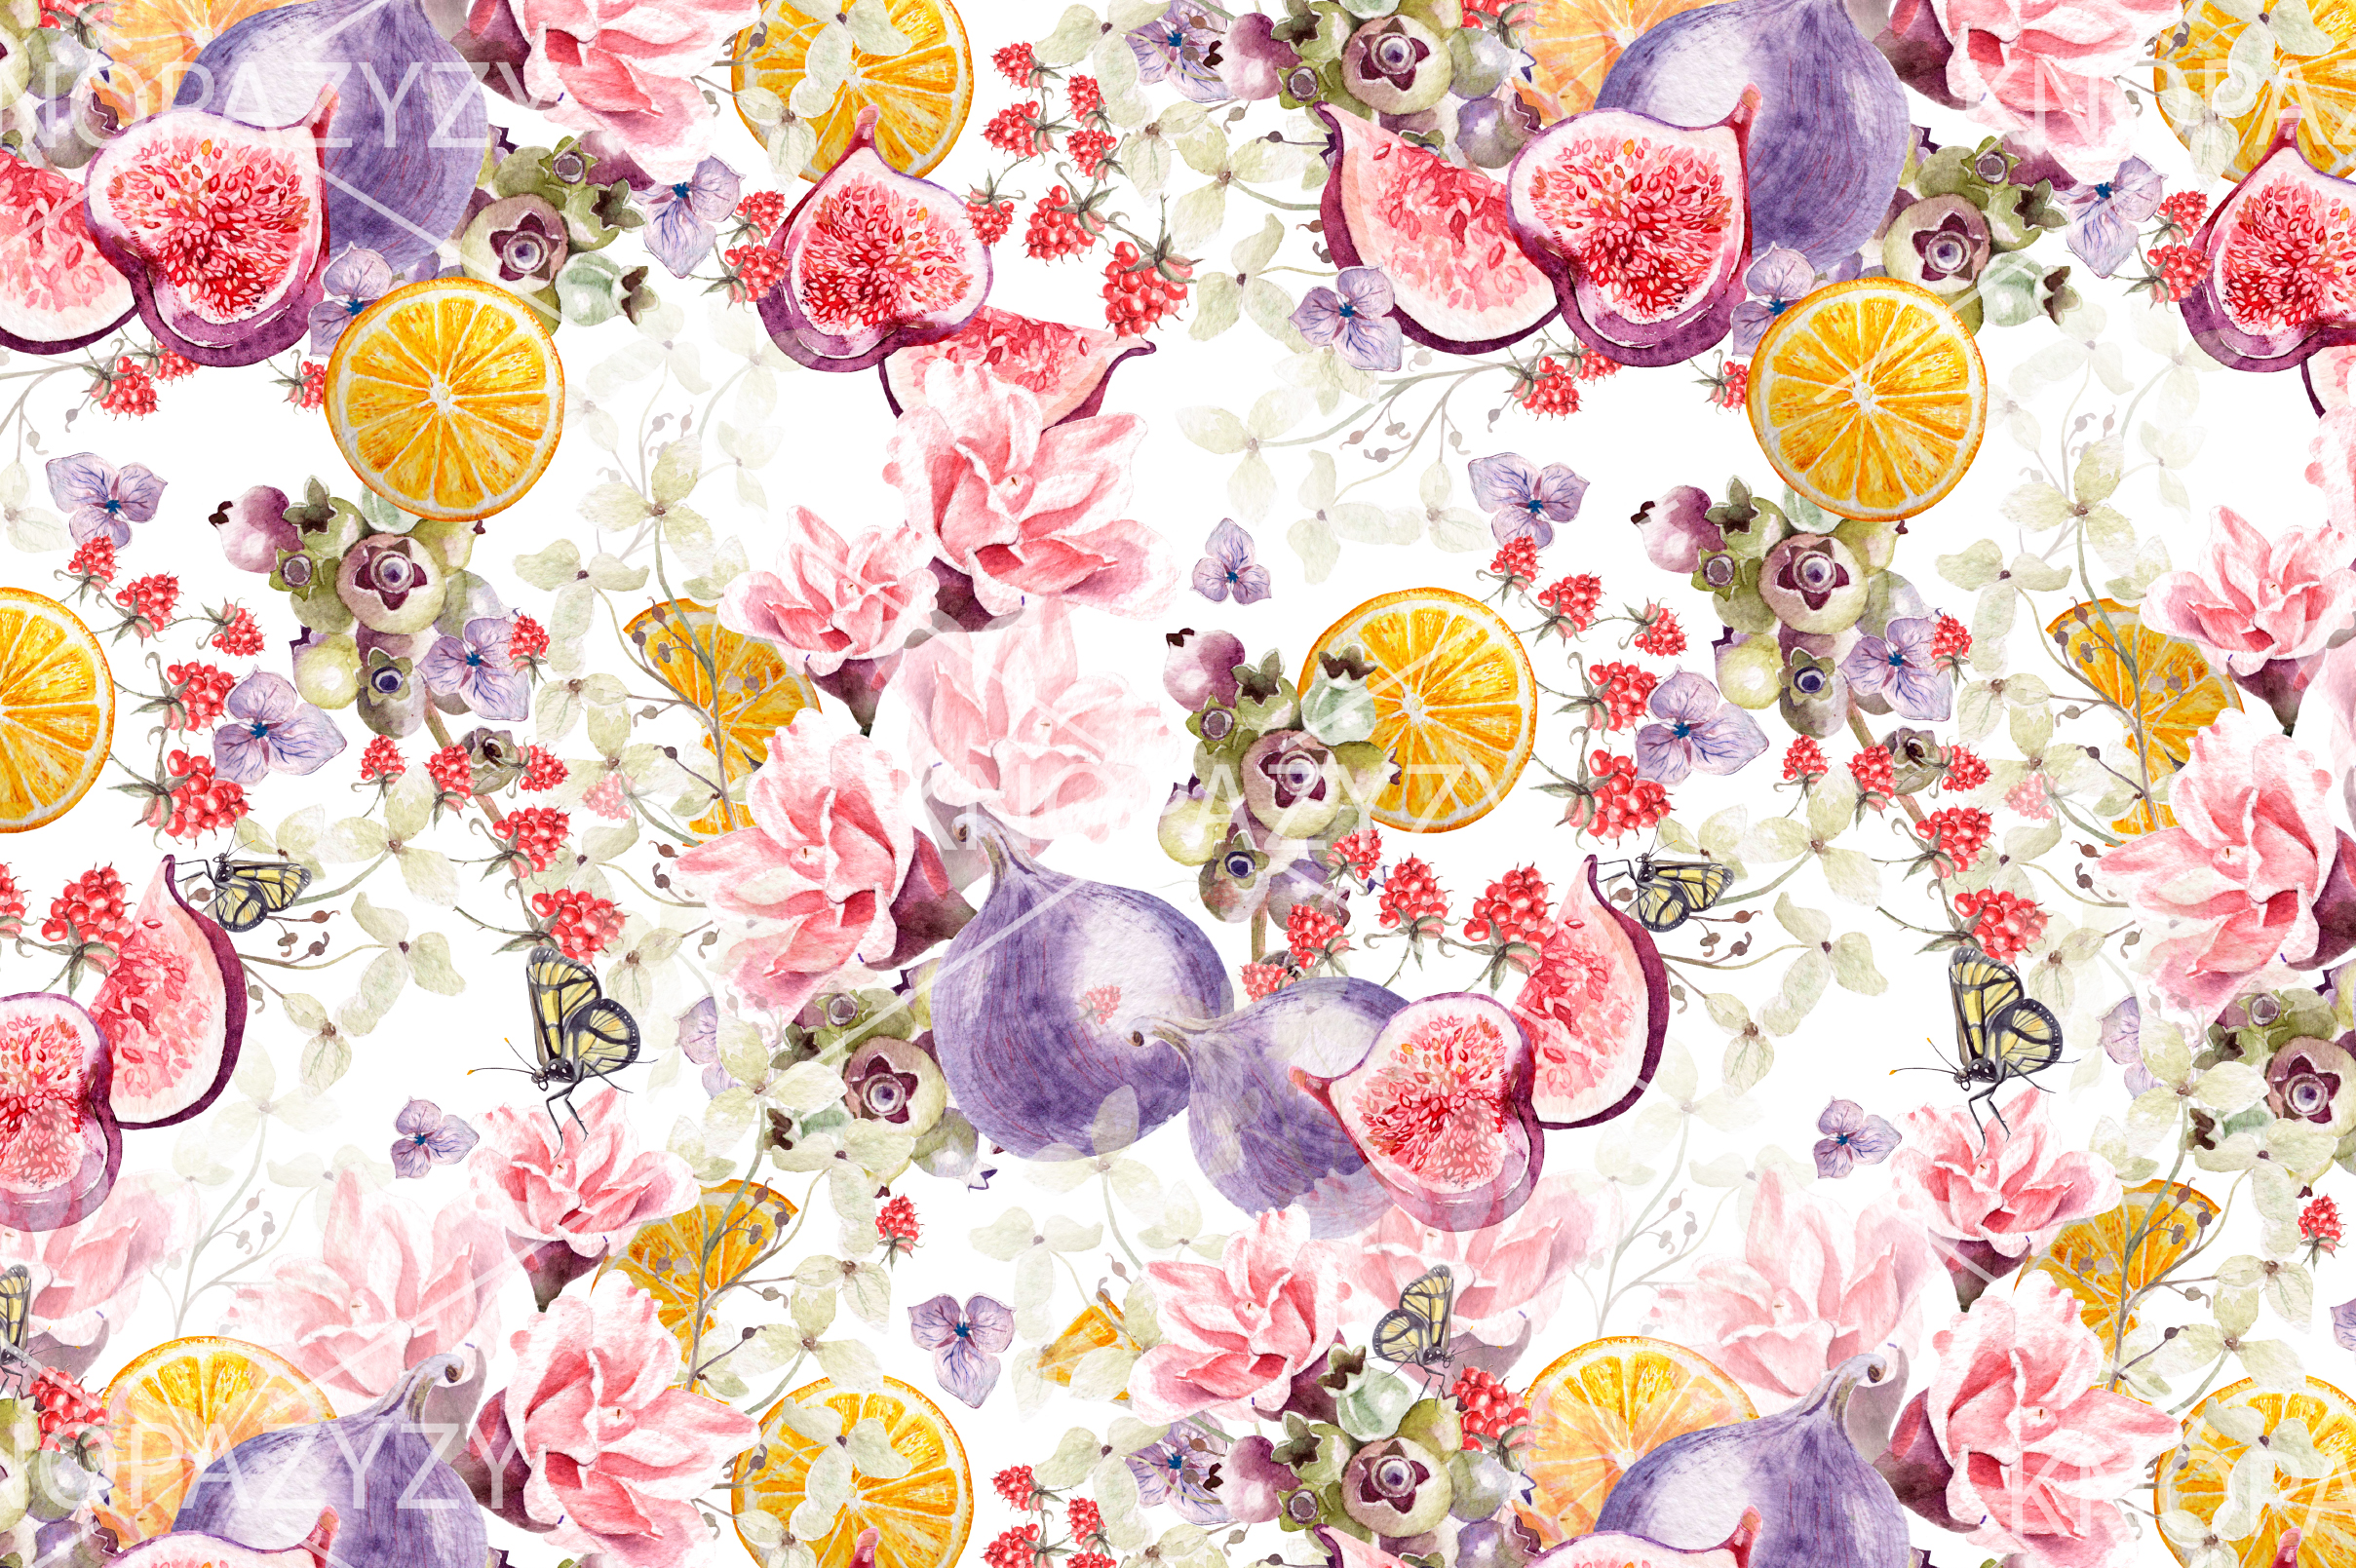 6 Hand Drawn Watercolor PATTERNS example image 6